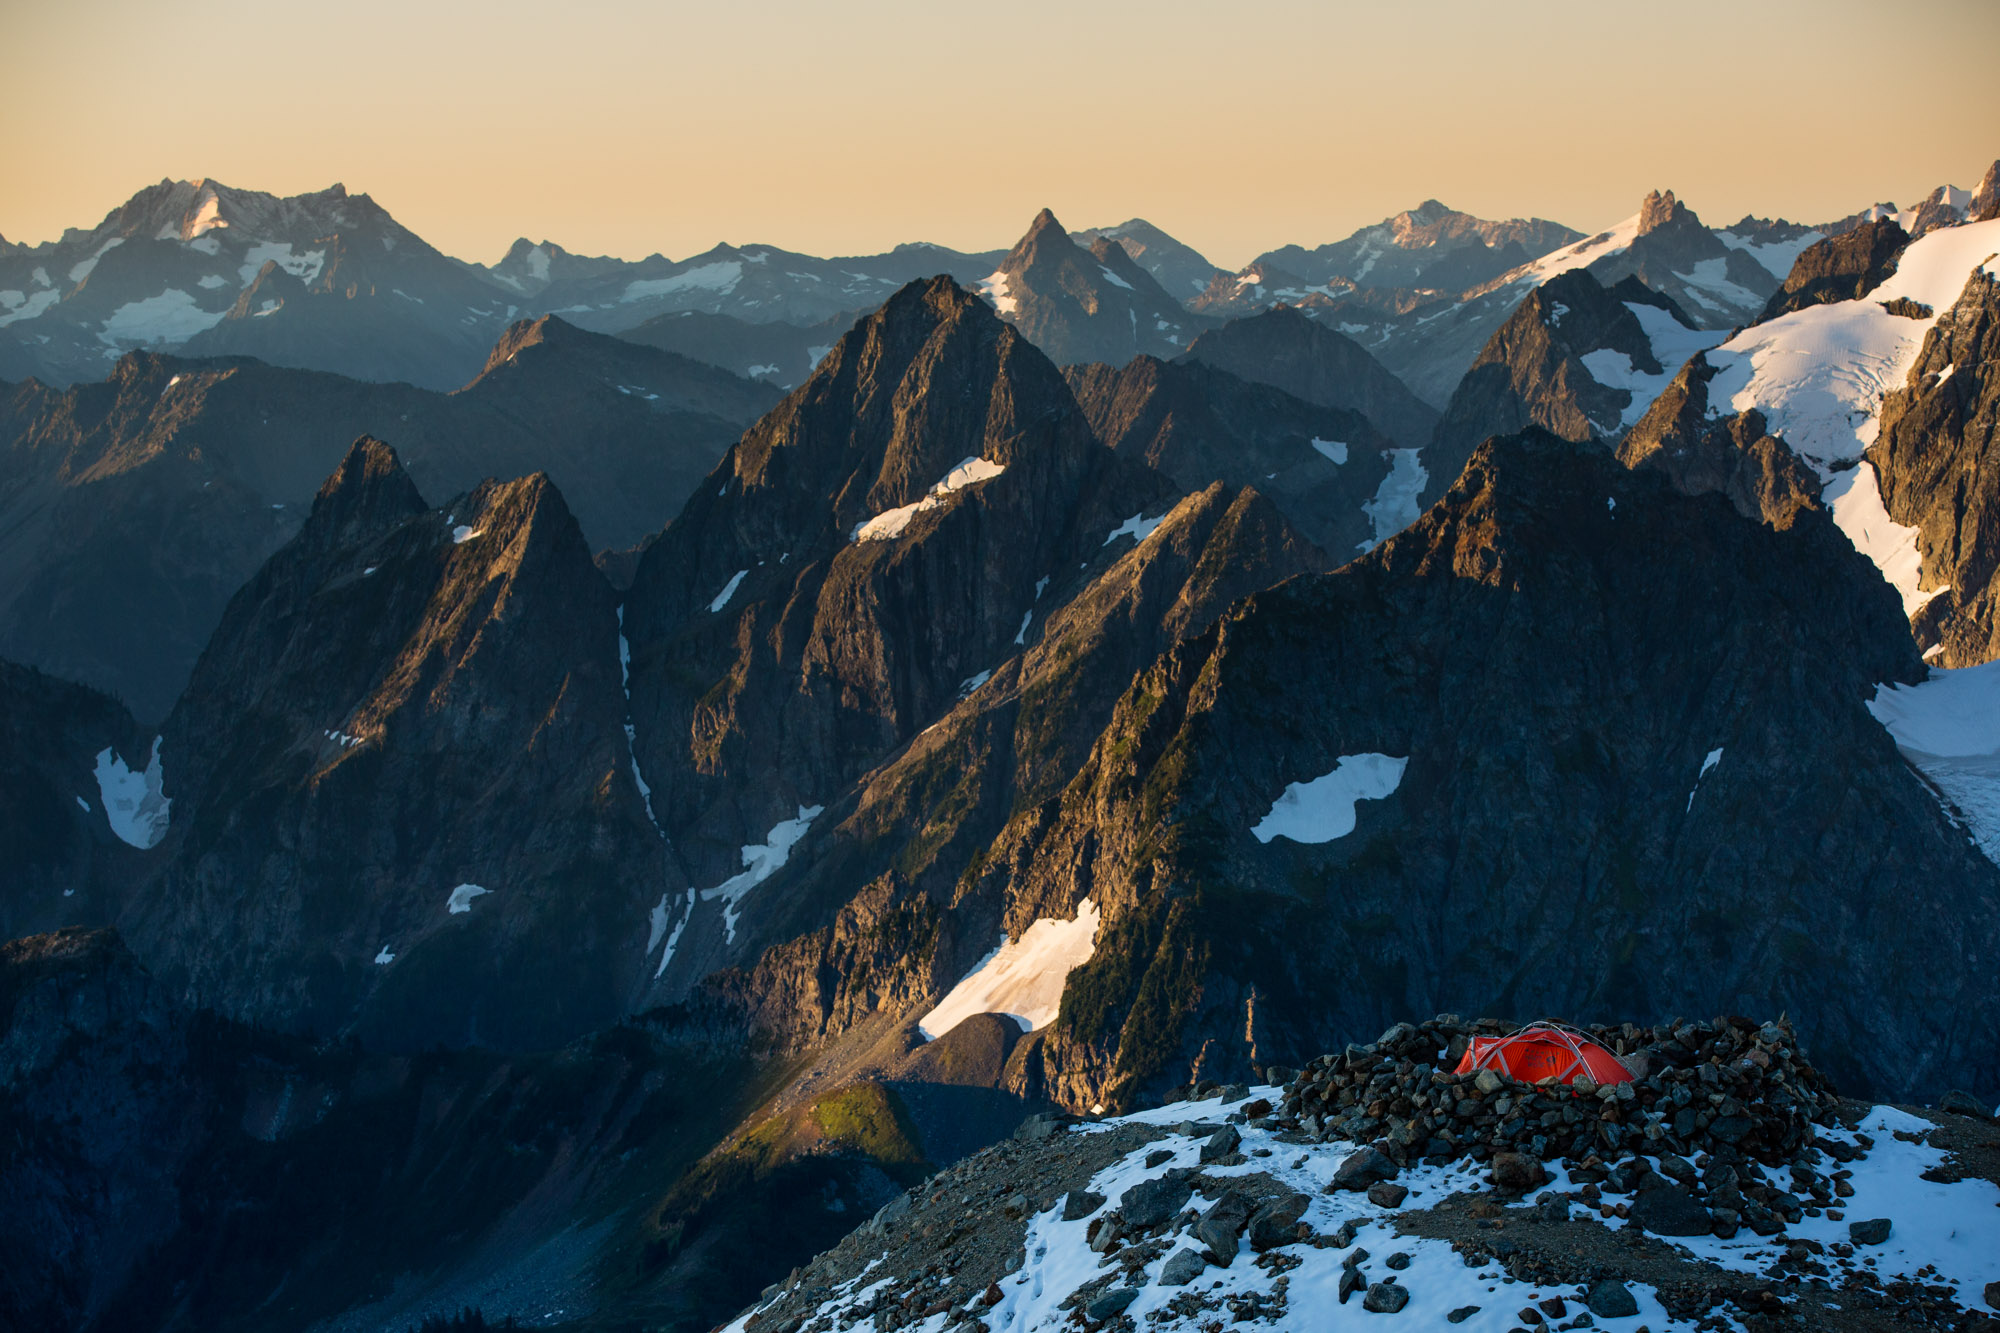 Camping in Mountains | Adventure Travel Photography